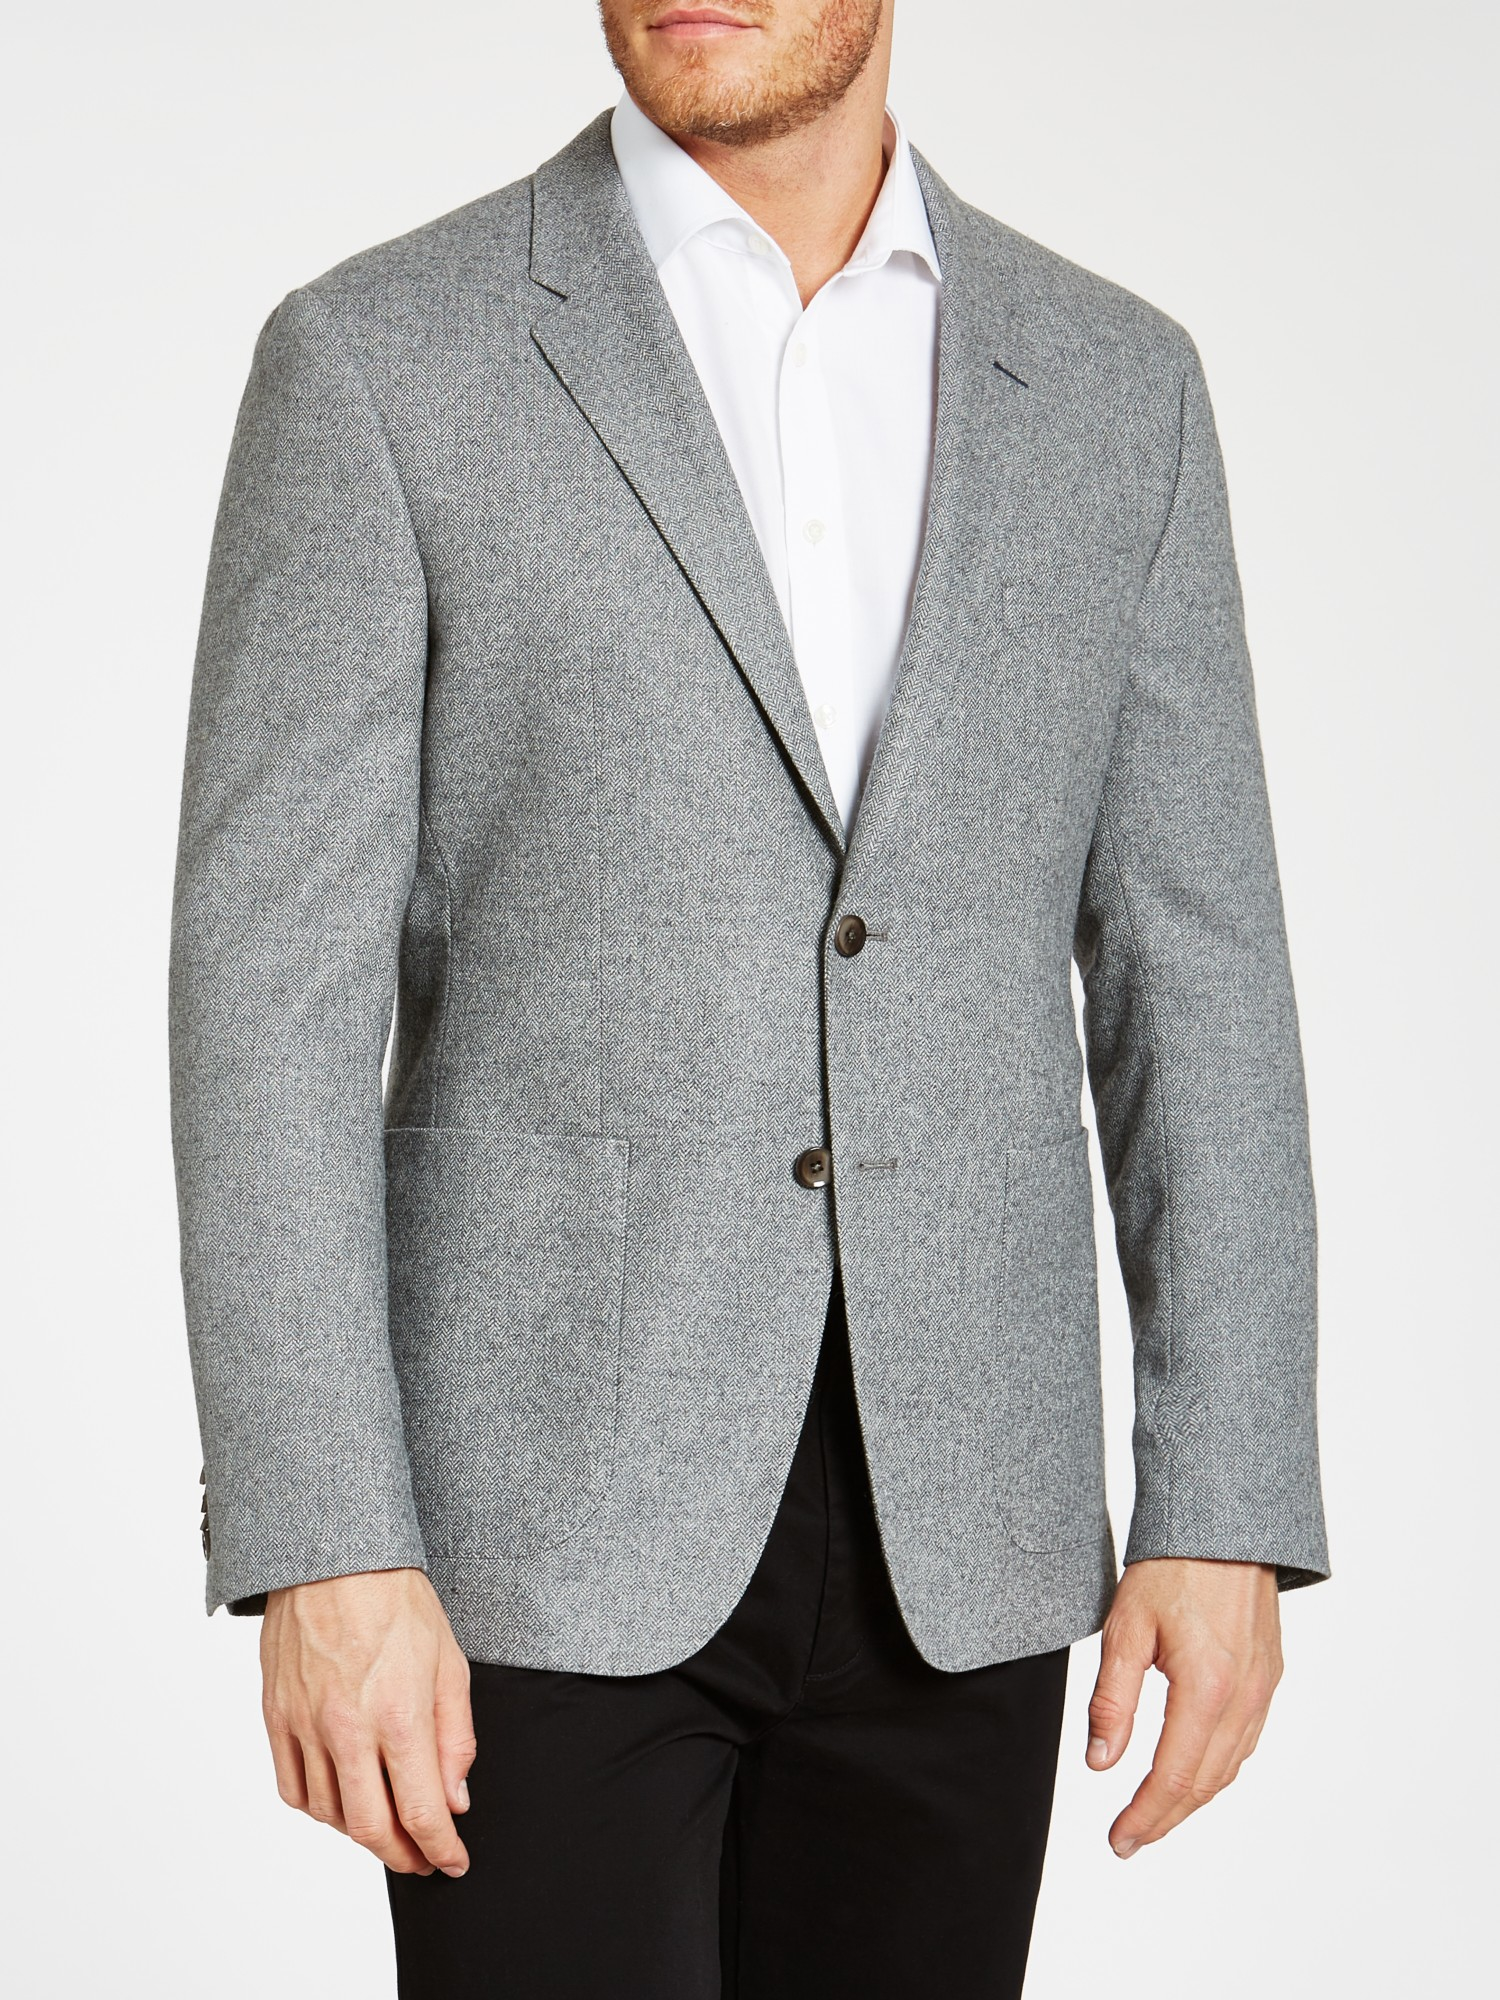 9a56a405fa2 Tommy Hilfiger Normar Patch Pocket Herringbone Blazer in Gray for ...